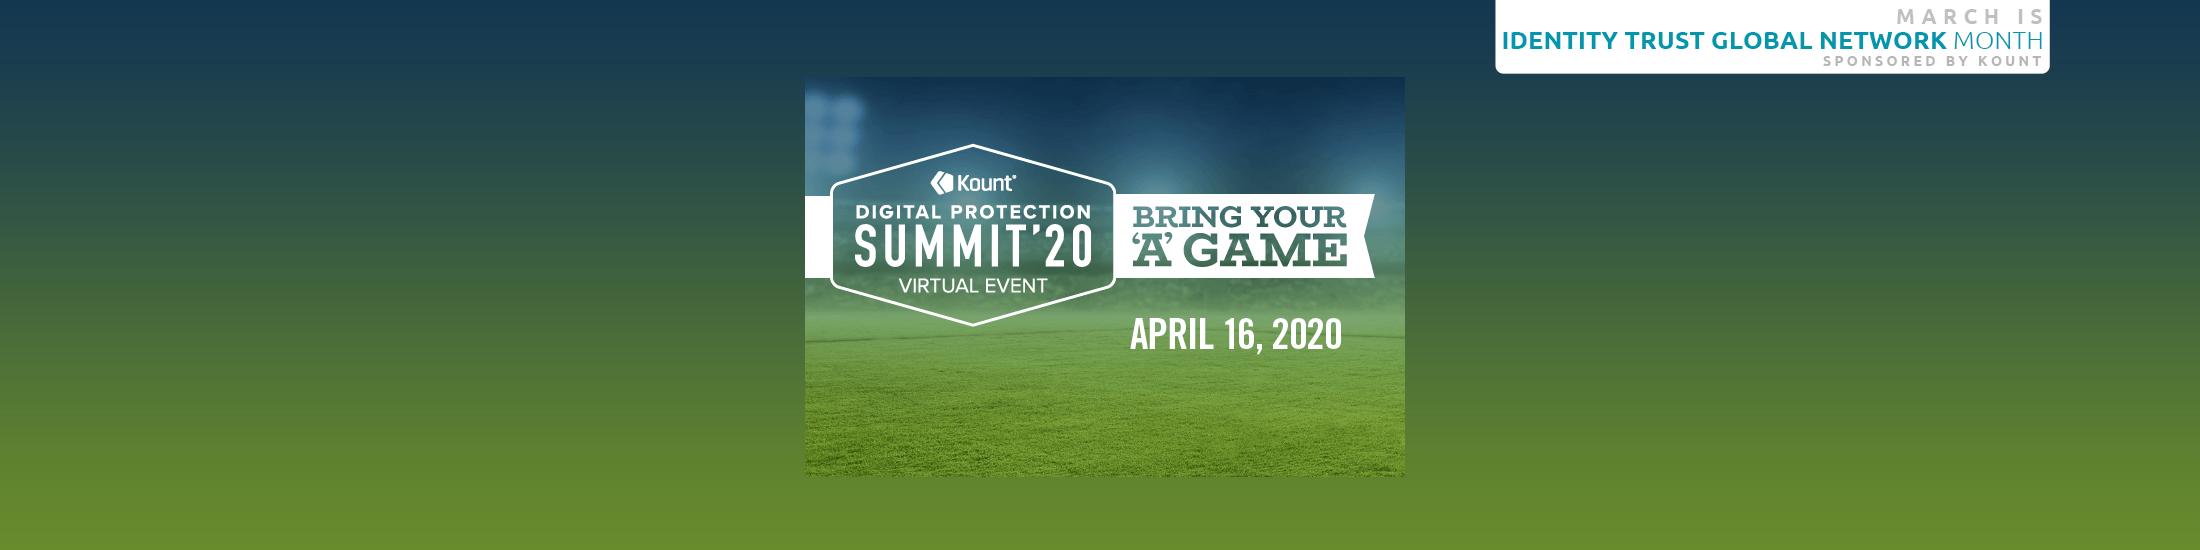 5 Reasons Why You Should Attend Kount's Virtual Digital Protection Summit